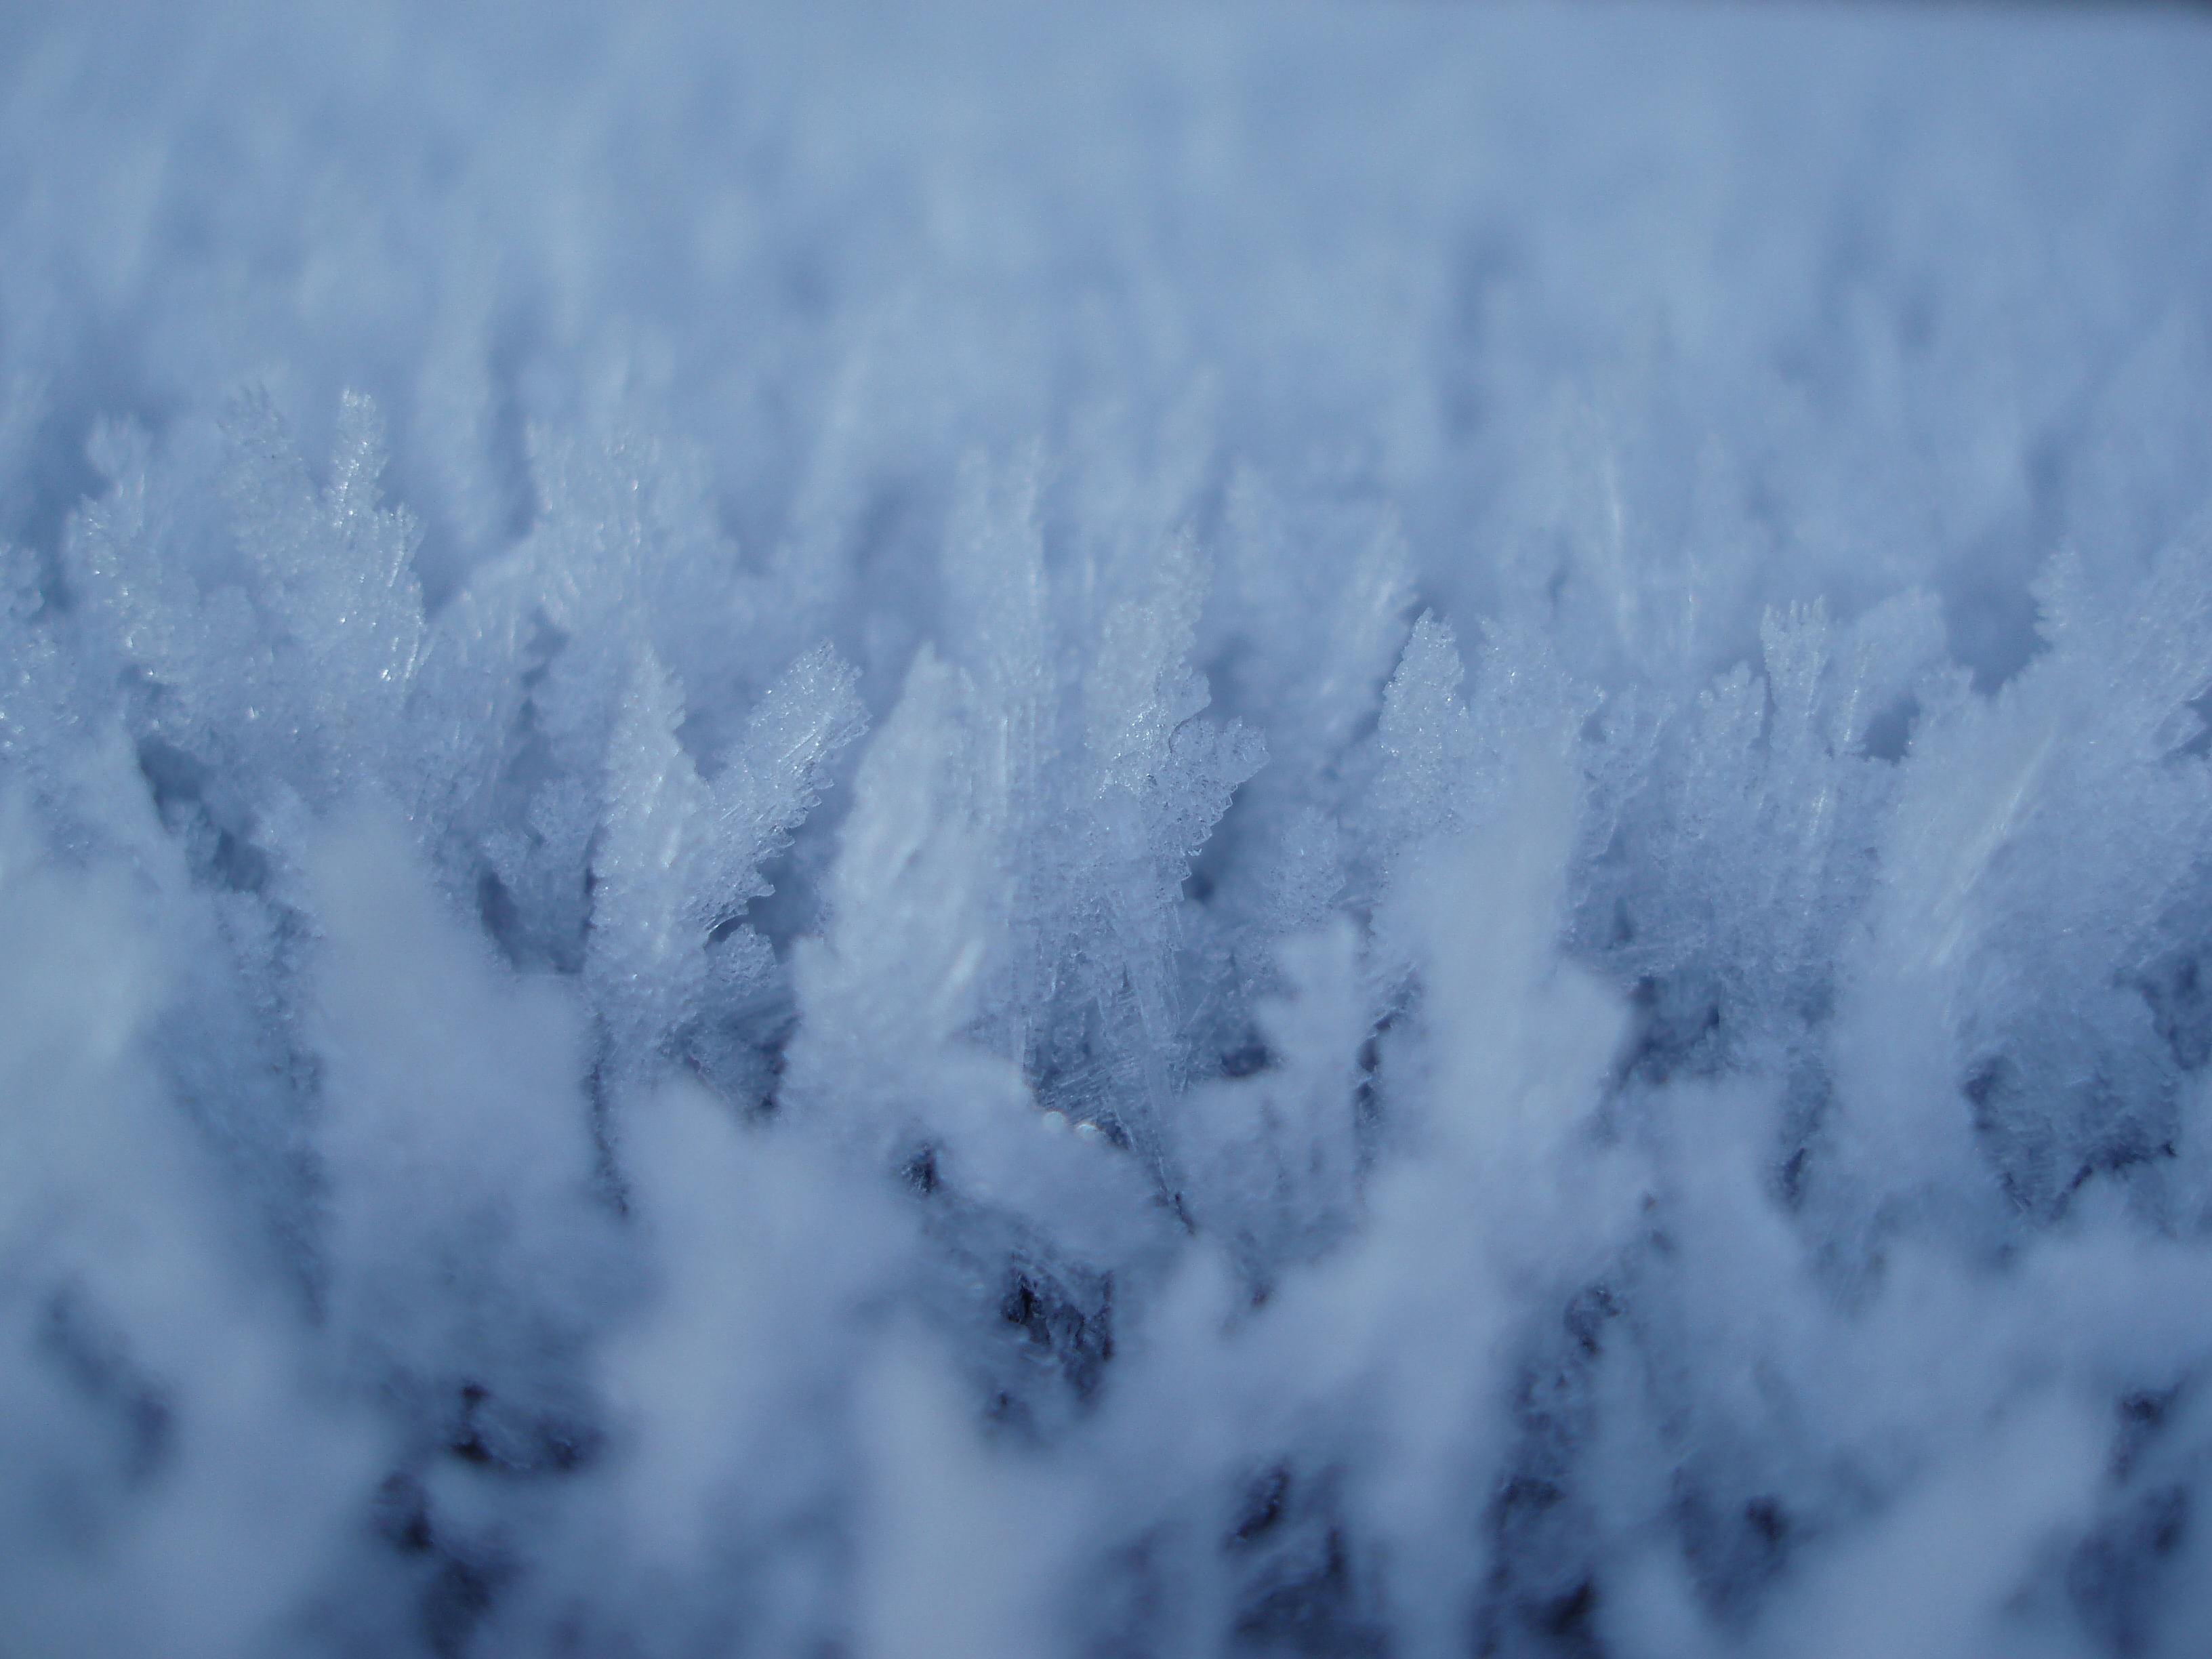 spike growths of hoar frost stretching  into long icy needles